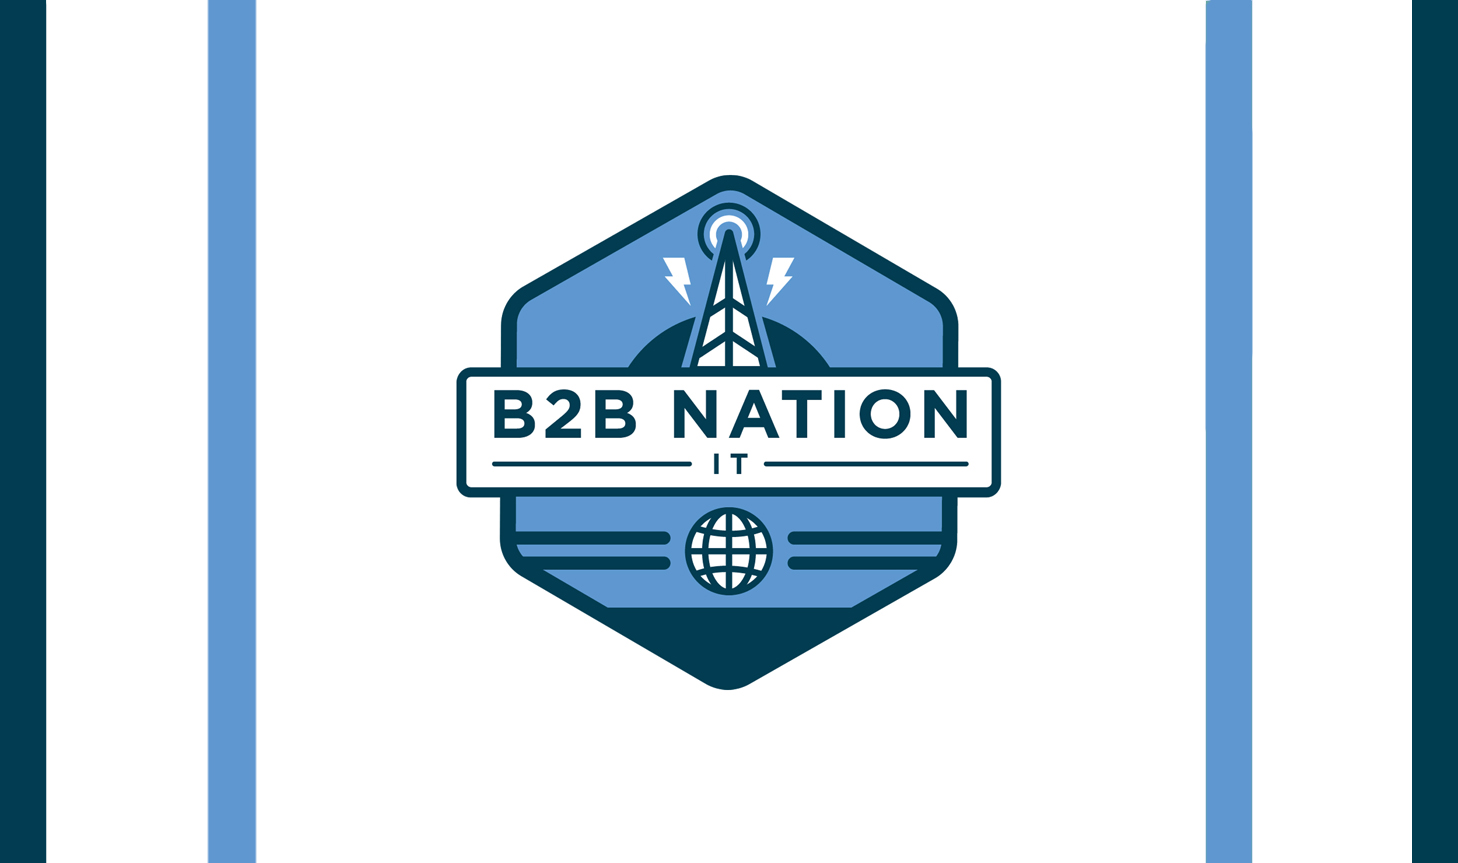 Introducing B2B Nation: IT Edition